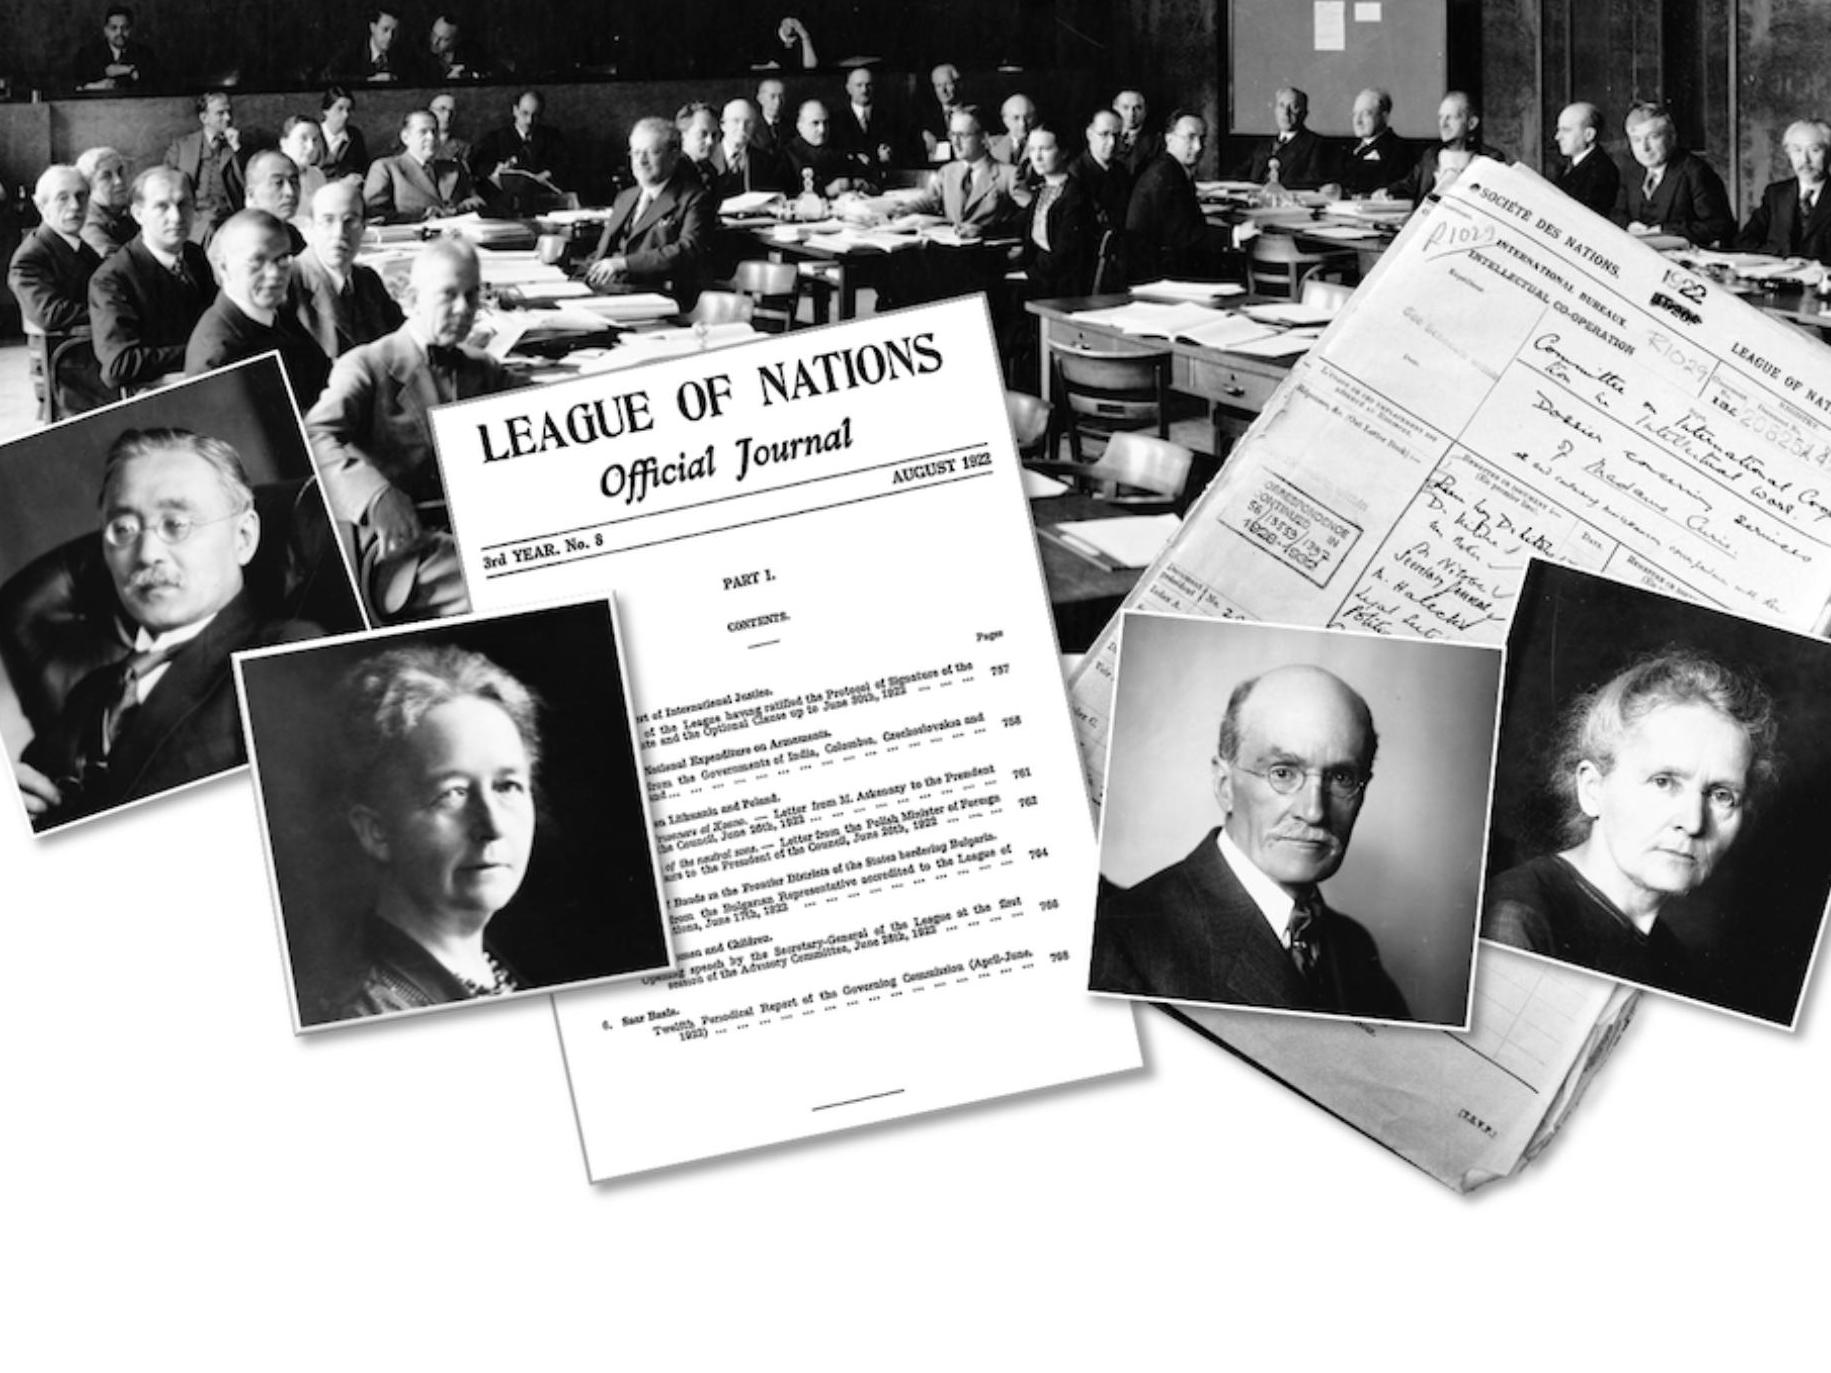 Centenary of the International Committee on Intellectual Cooperation of the League of Nations